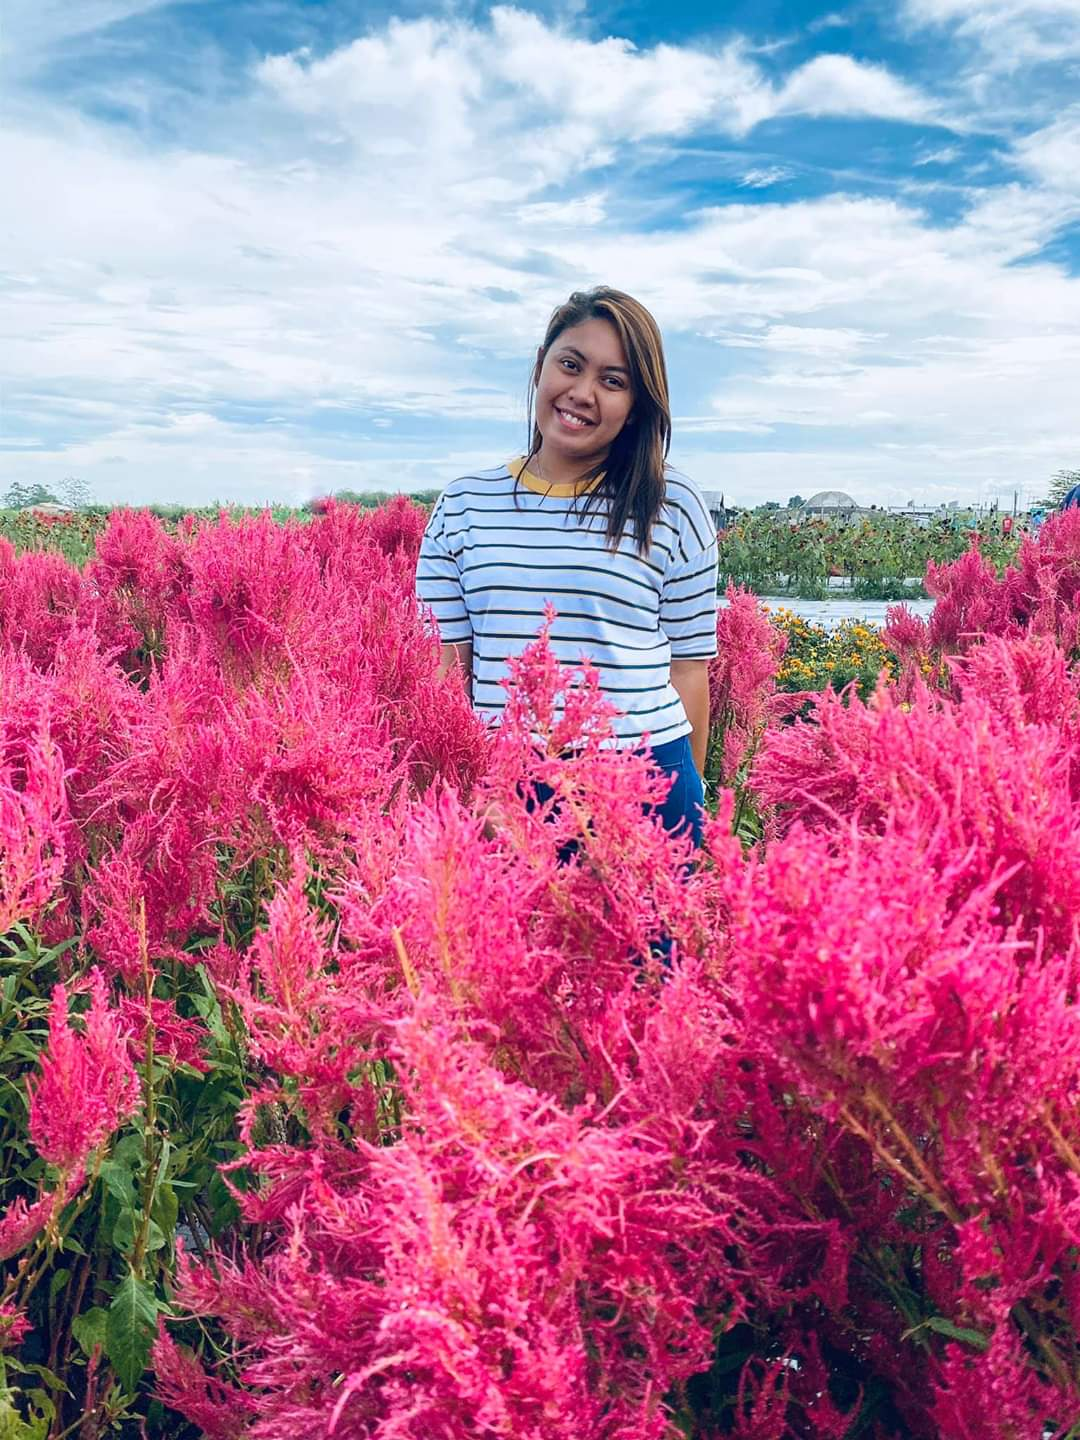 INKS. The farm has celosias in pink, not just the usual yellows and reds. Photo courtesy of Kat Lapira